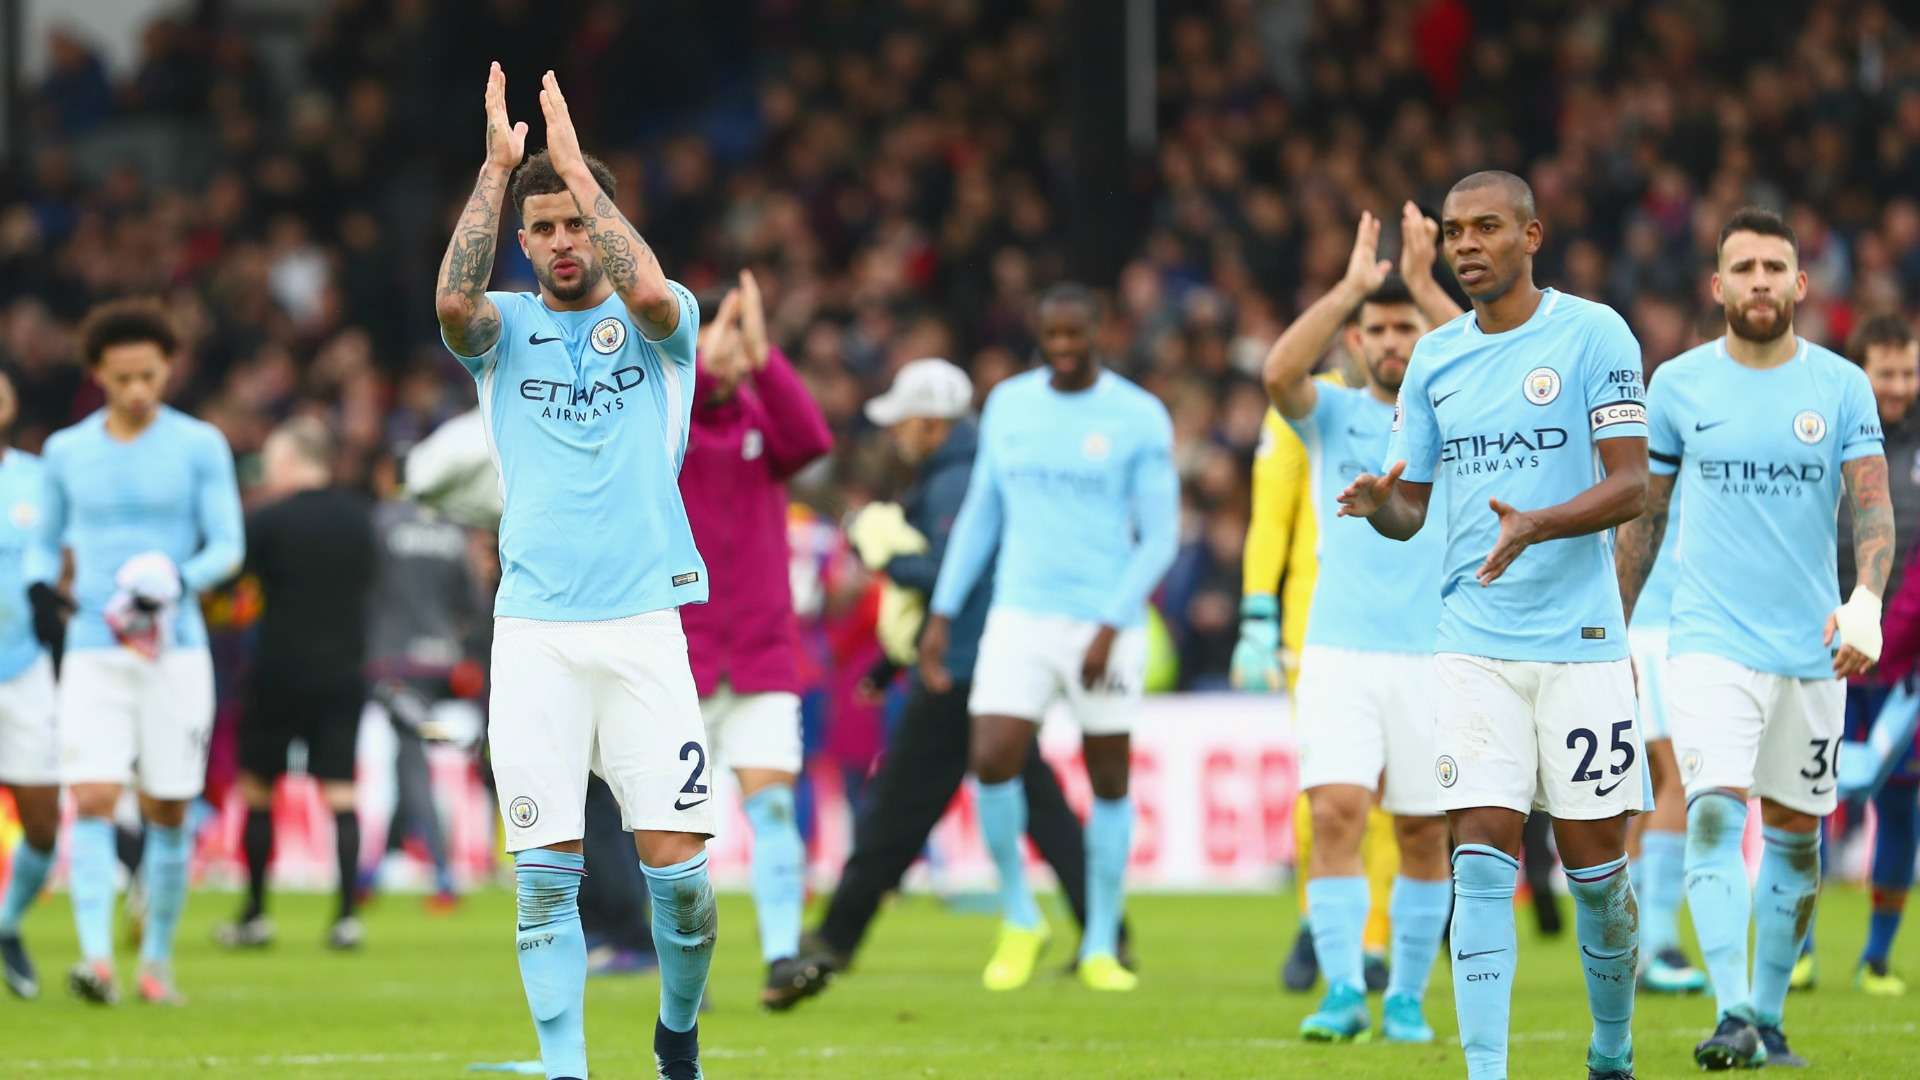 Crystal Palace frena al Manchester City con empate 0-0